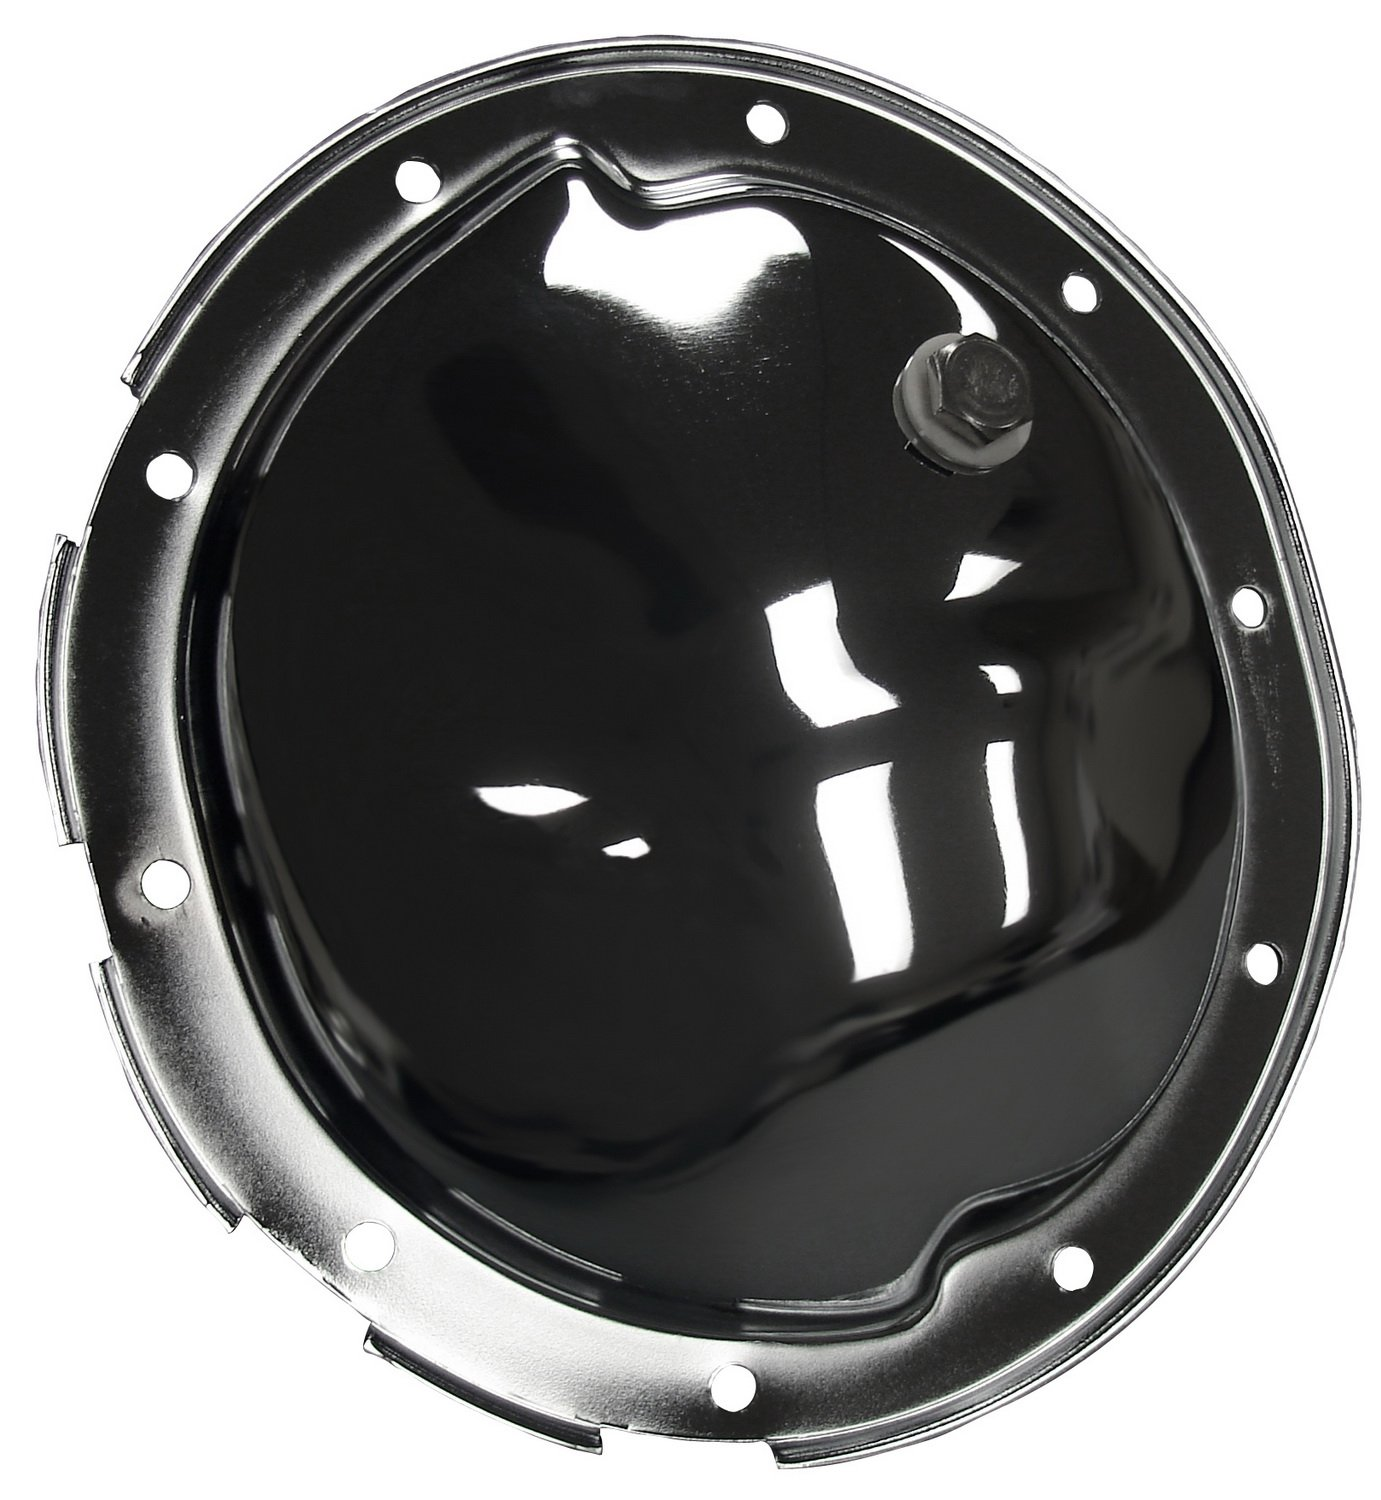 CSI 1316 Steel Differential Cover 1988-98 Gm 10 bolt rear ends Competition Specialities